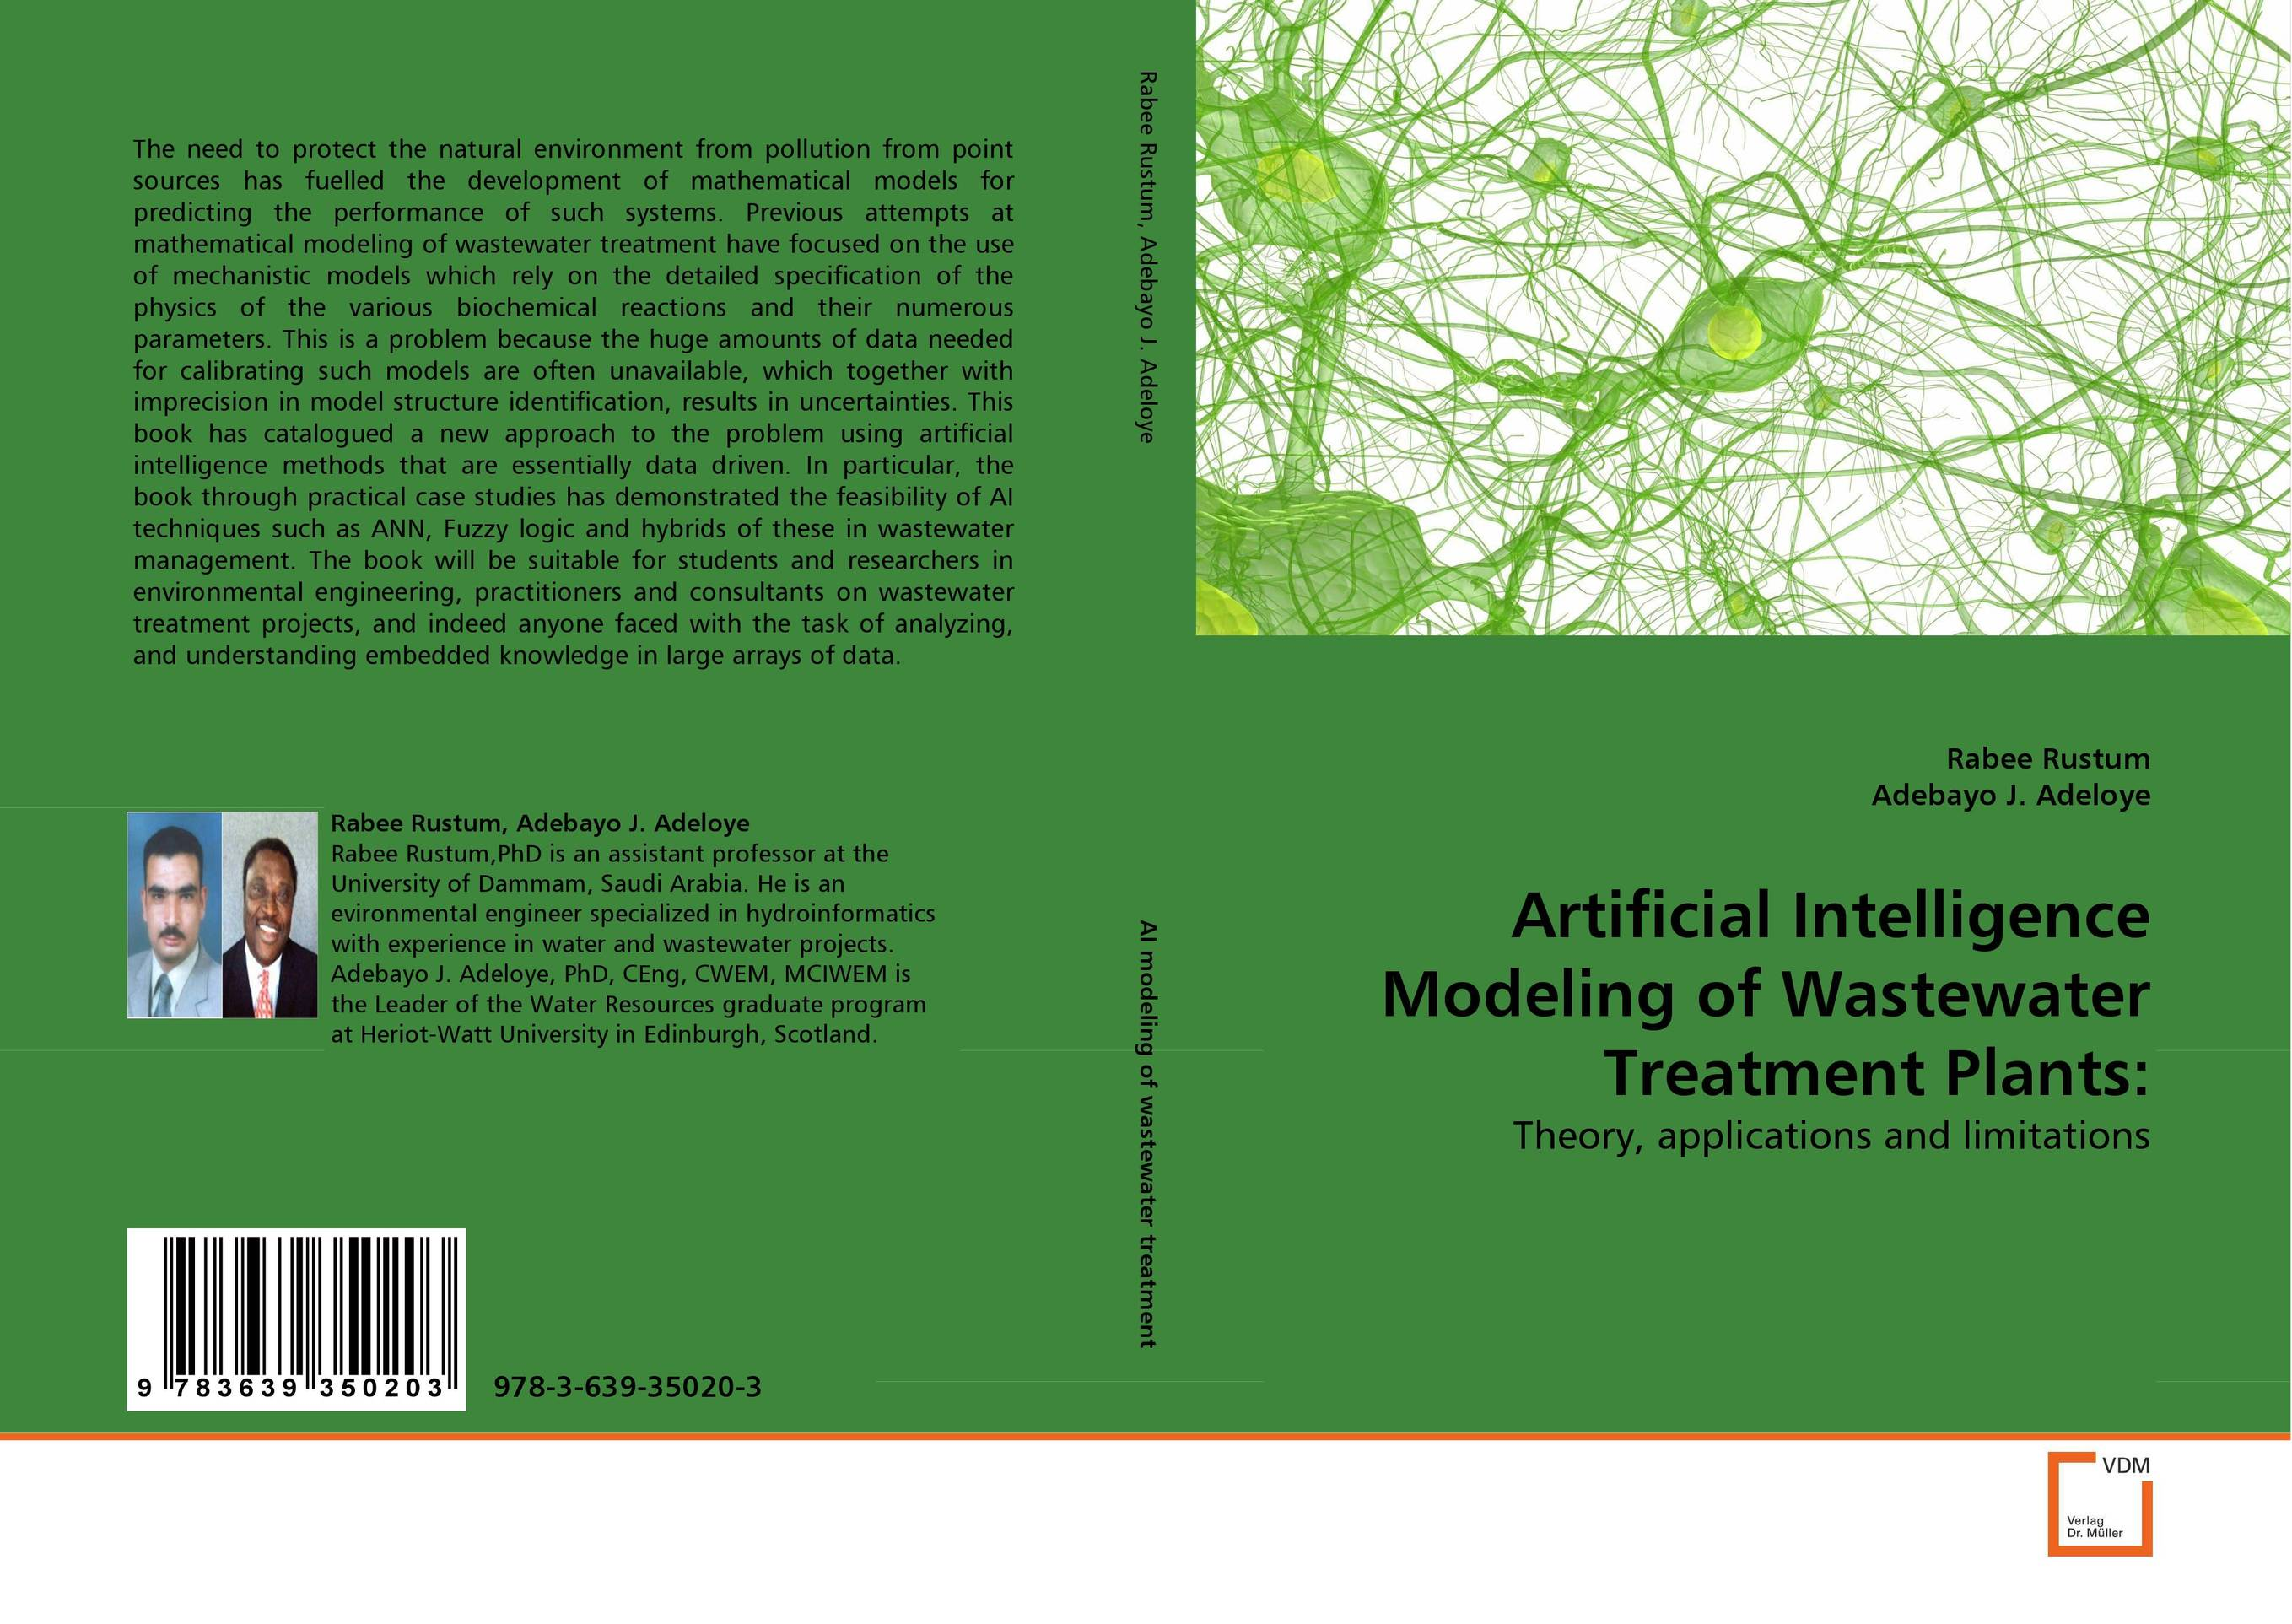 Artificial Intelligence Modeling of Wastewater Treatment Plants: web personalization models using computational intelligence